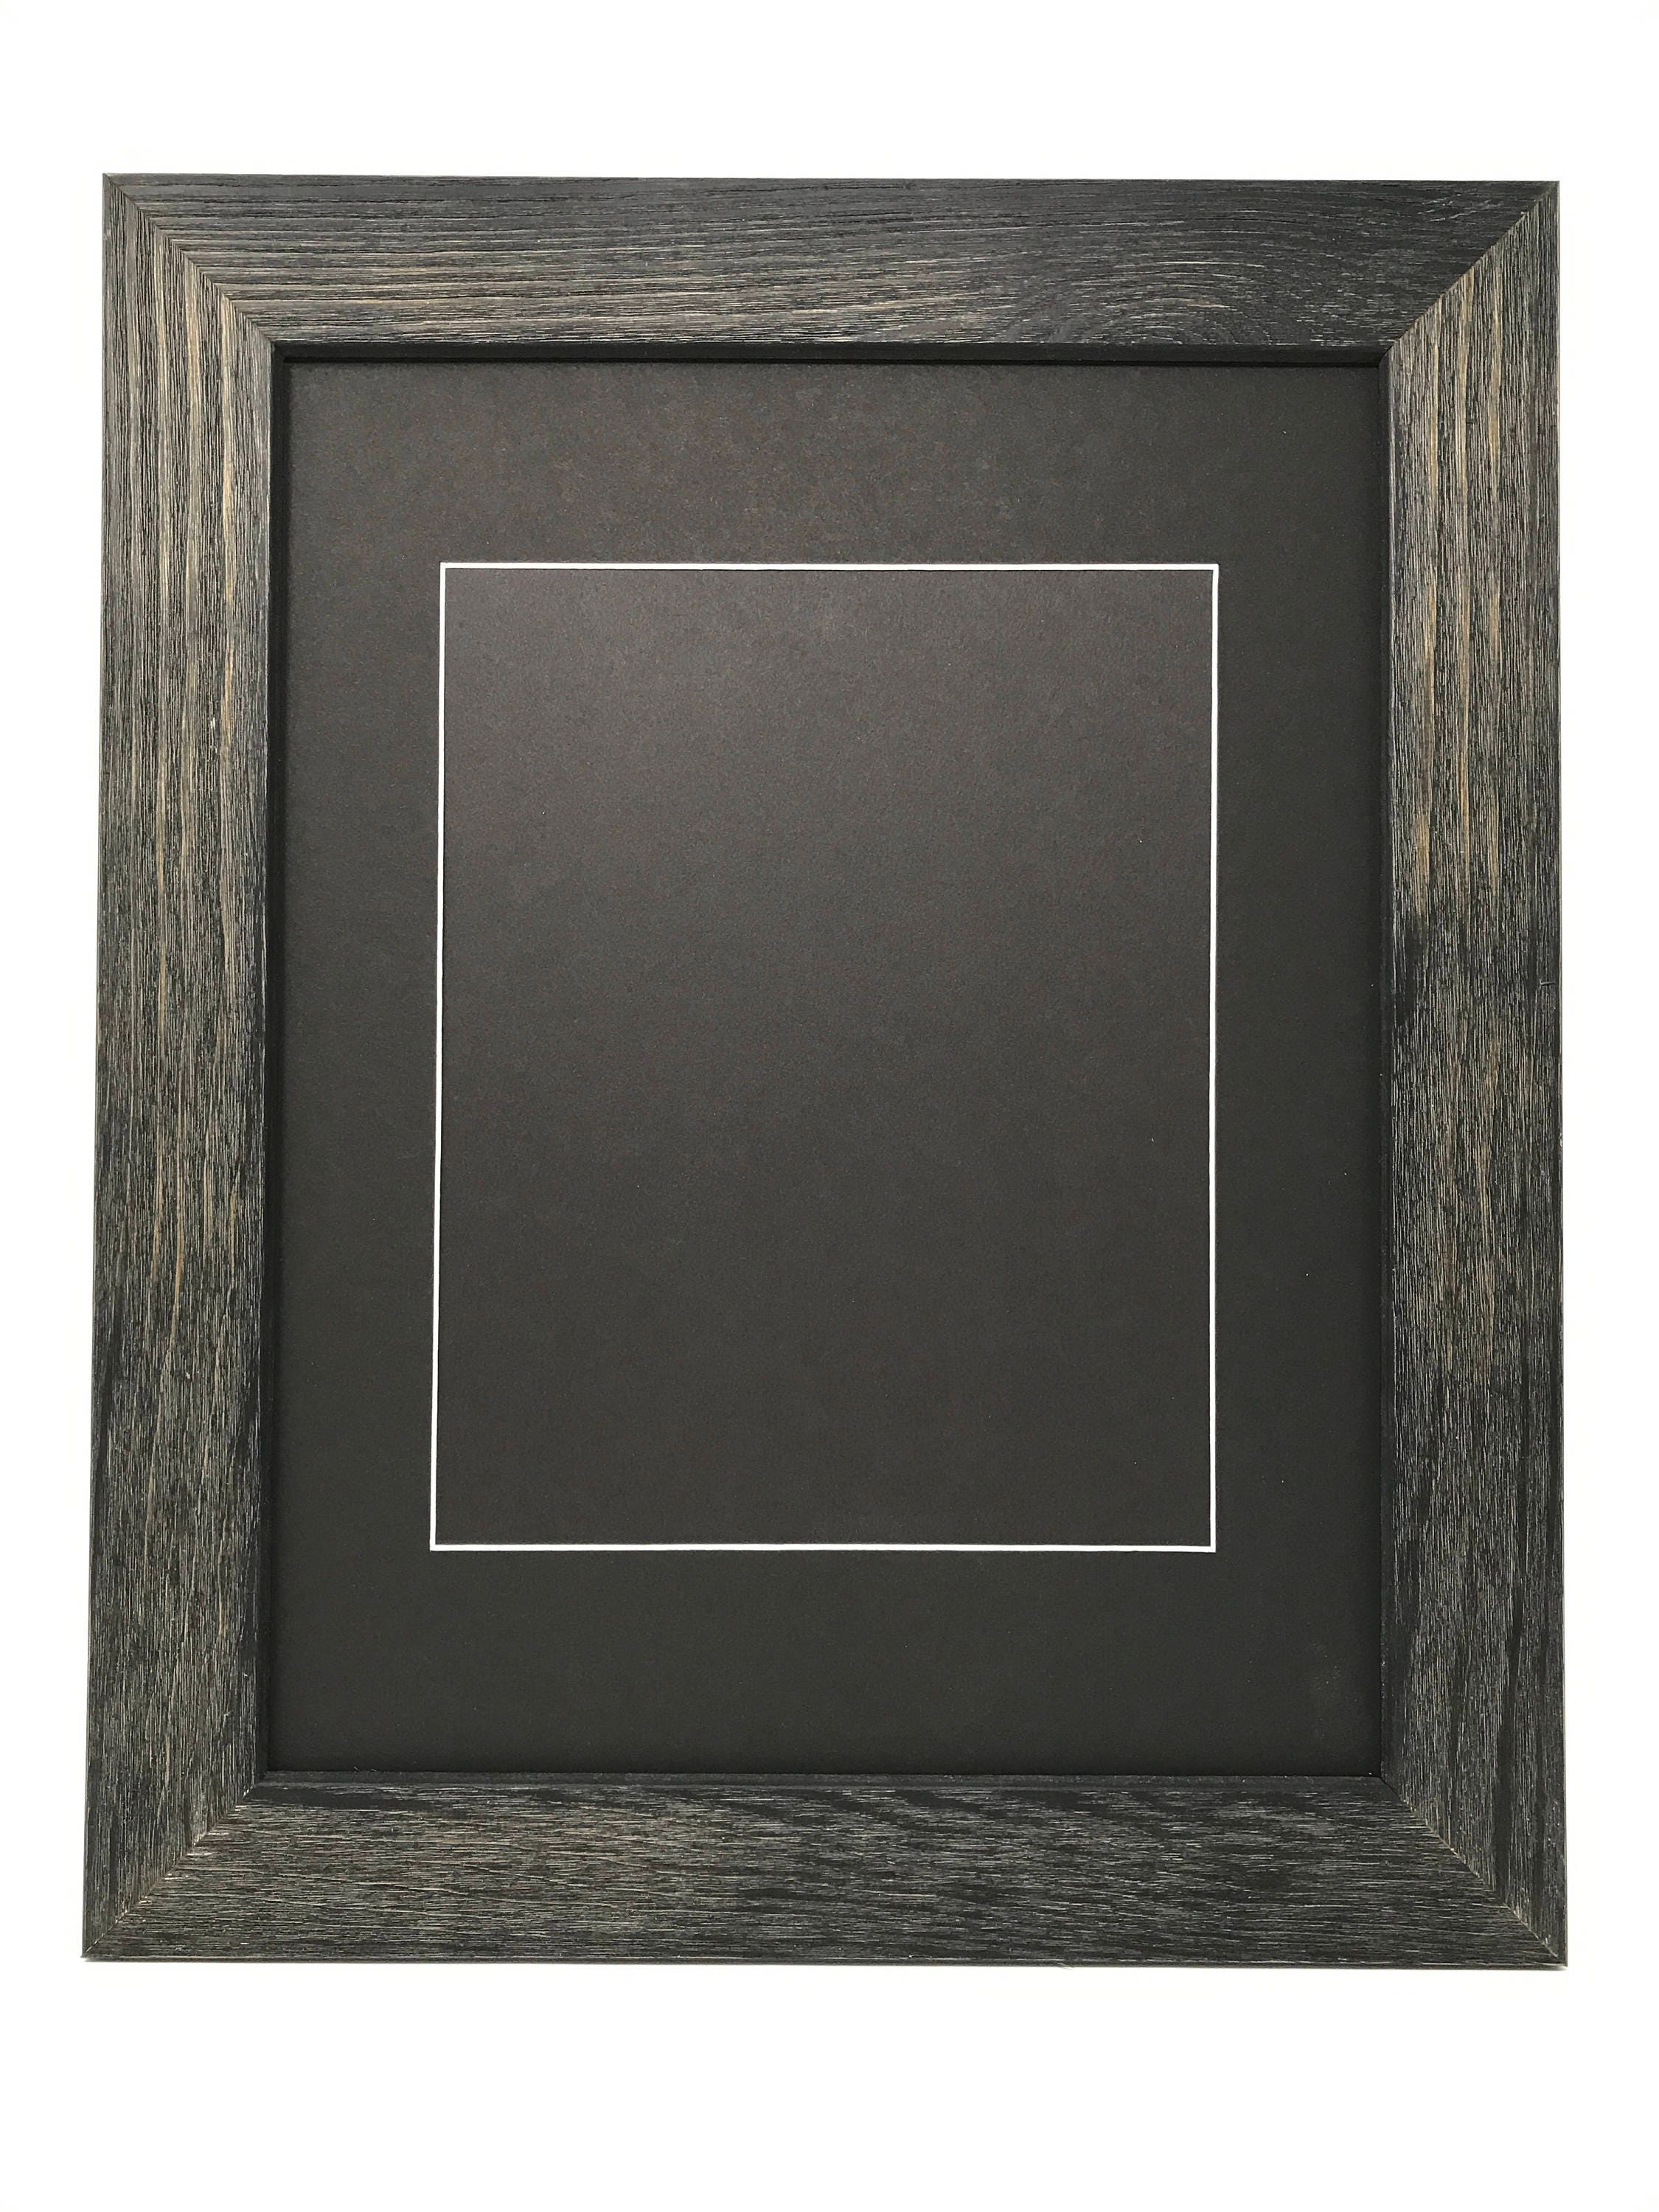 16x20 1.75 Rustic Black Solid Wood Picture Frame with Black ...